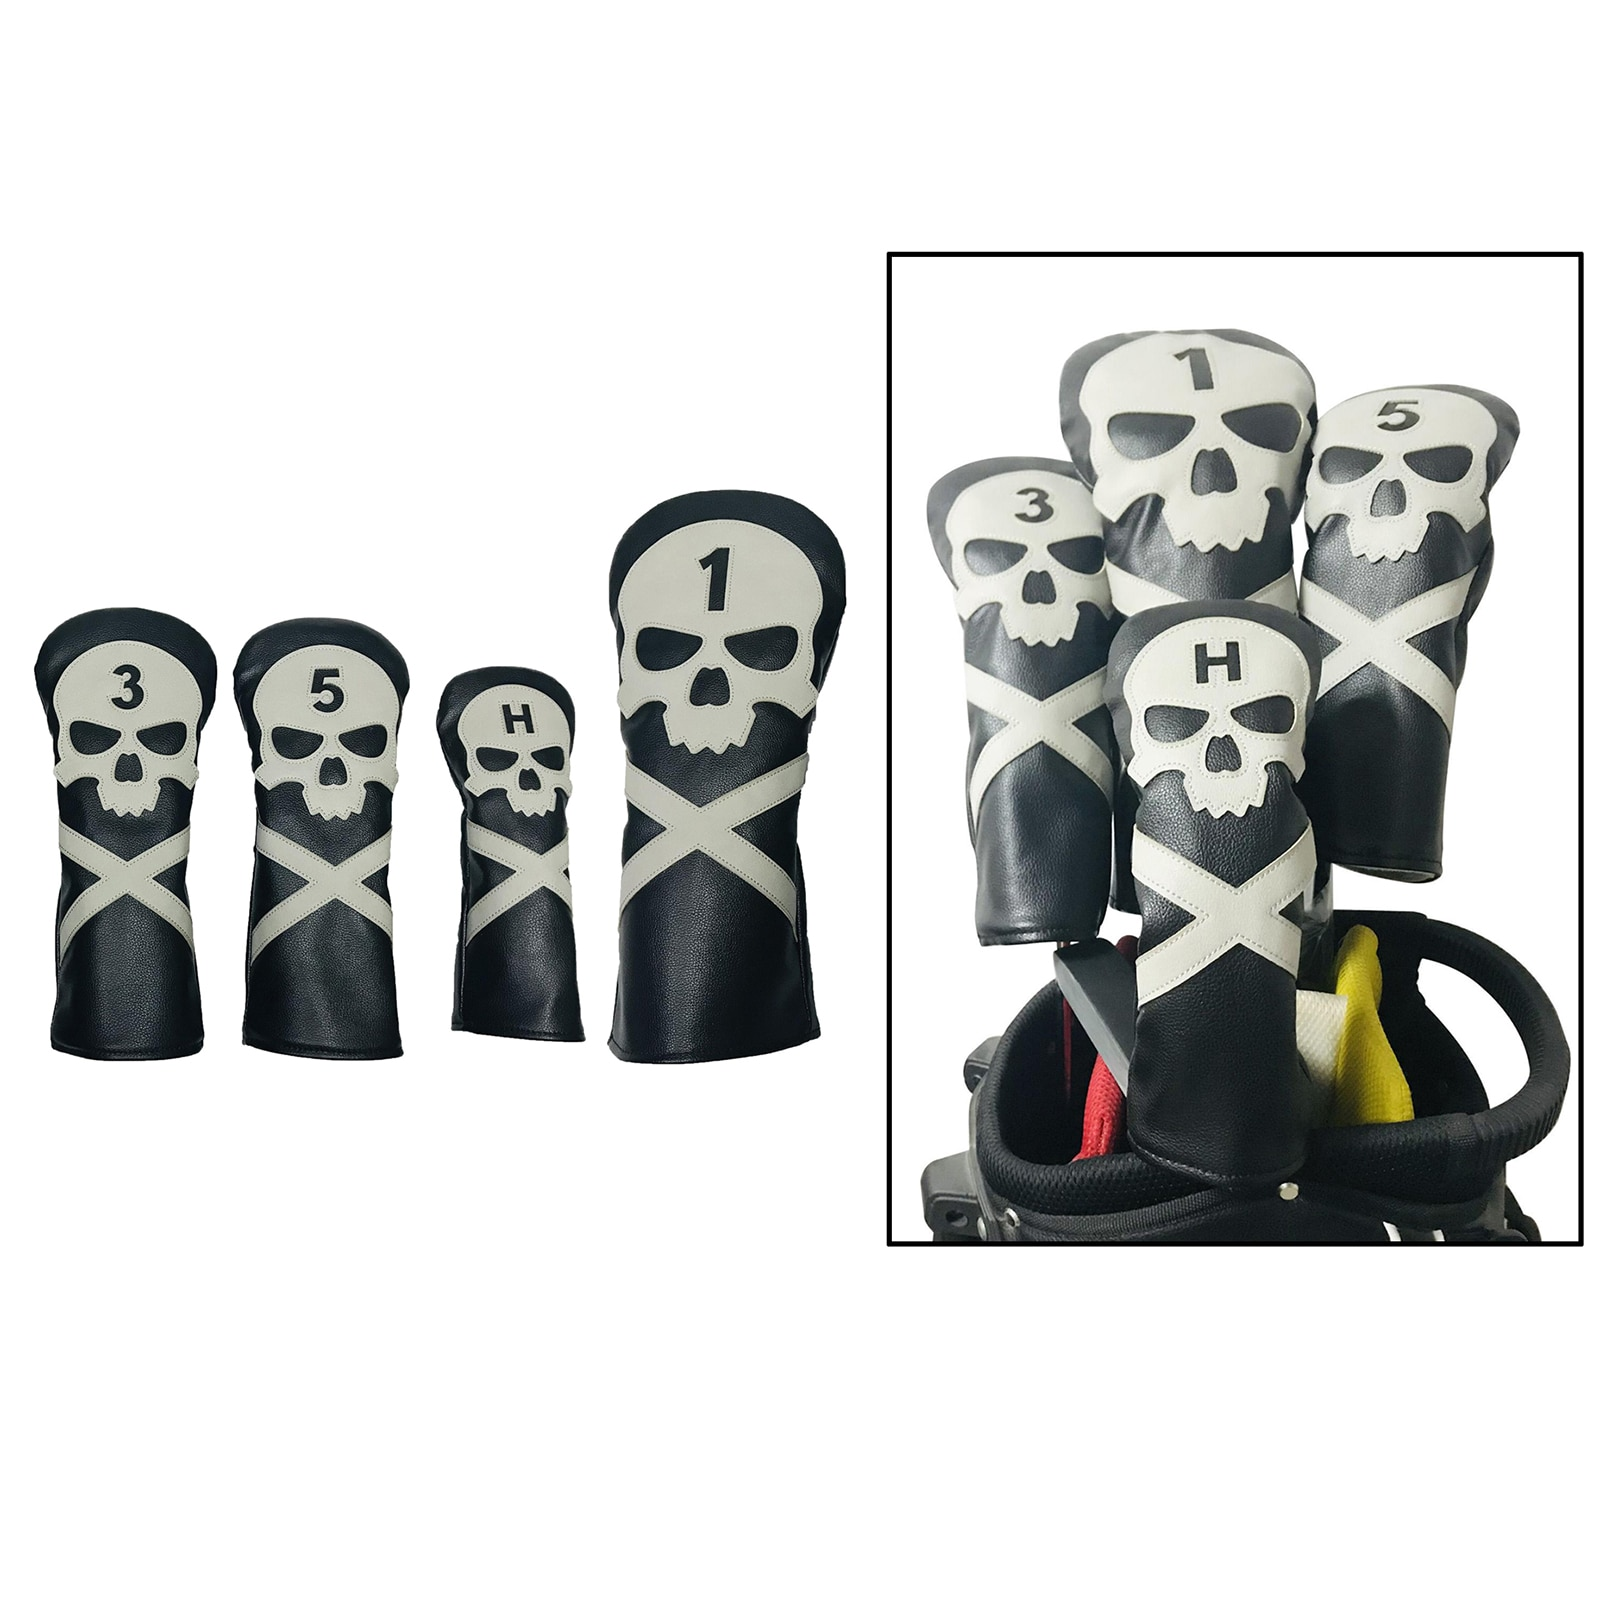 4 Pieces PU Leather Skull Printed Golf Wood Head Cover Golf Club PU Leather Headcovers Fit Driver Fairway Wood Hybrid